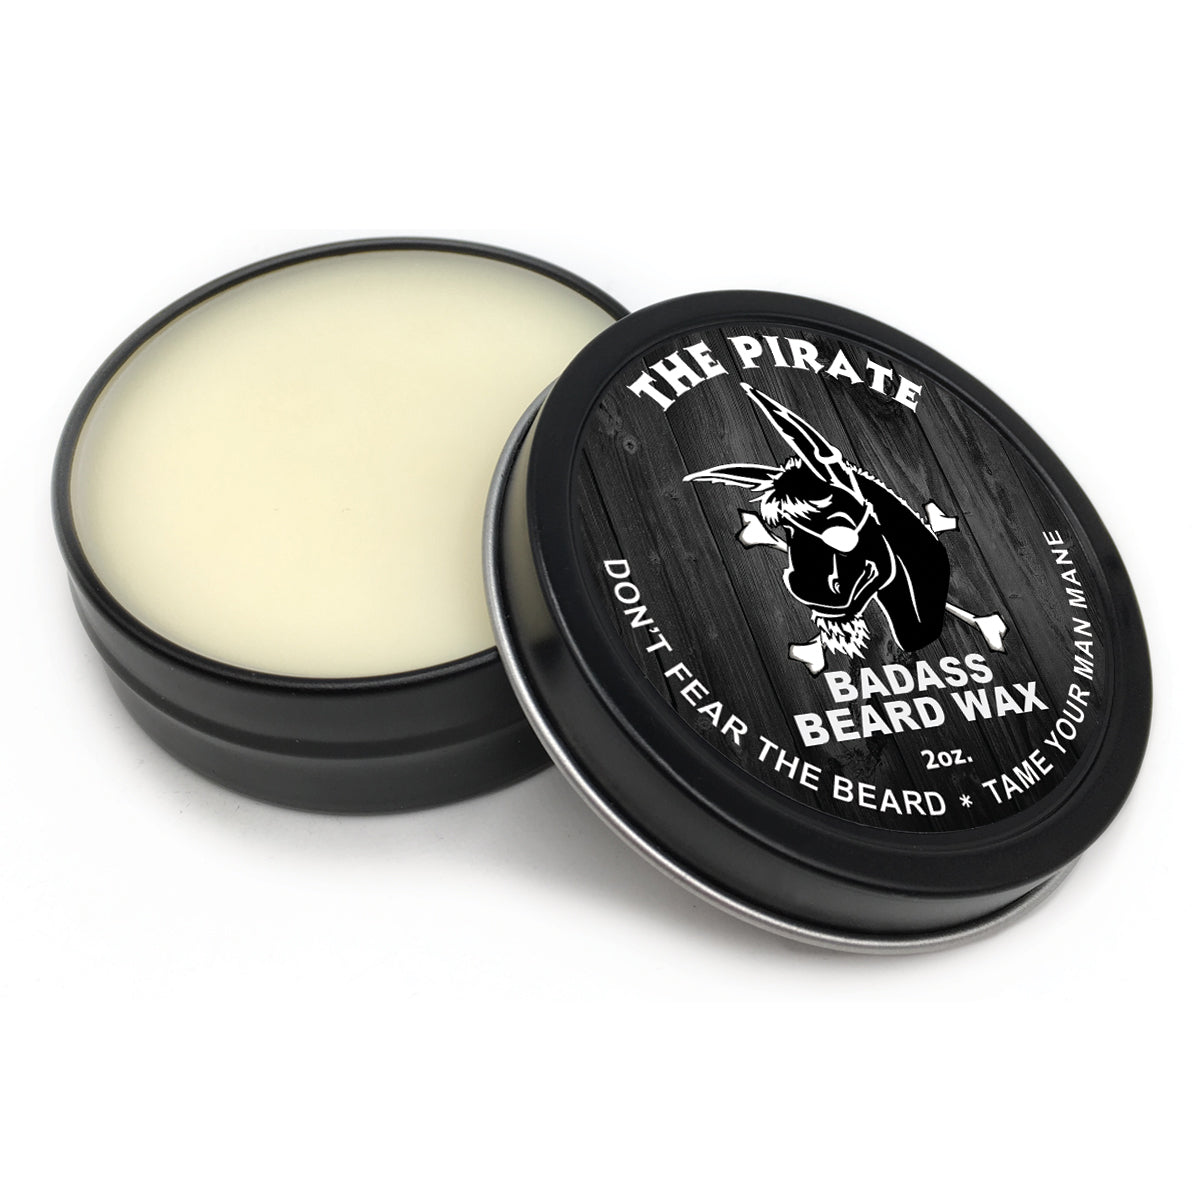 Badass Beard Wax - The Pirate